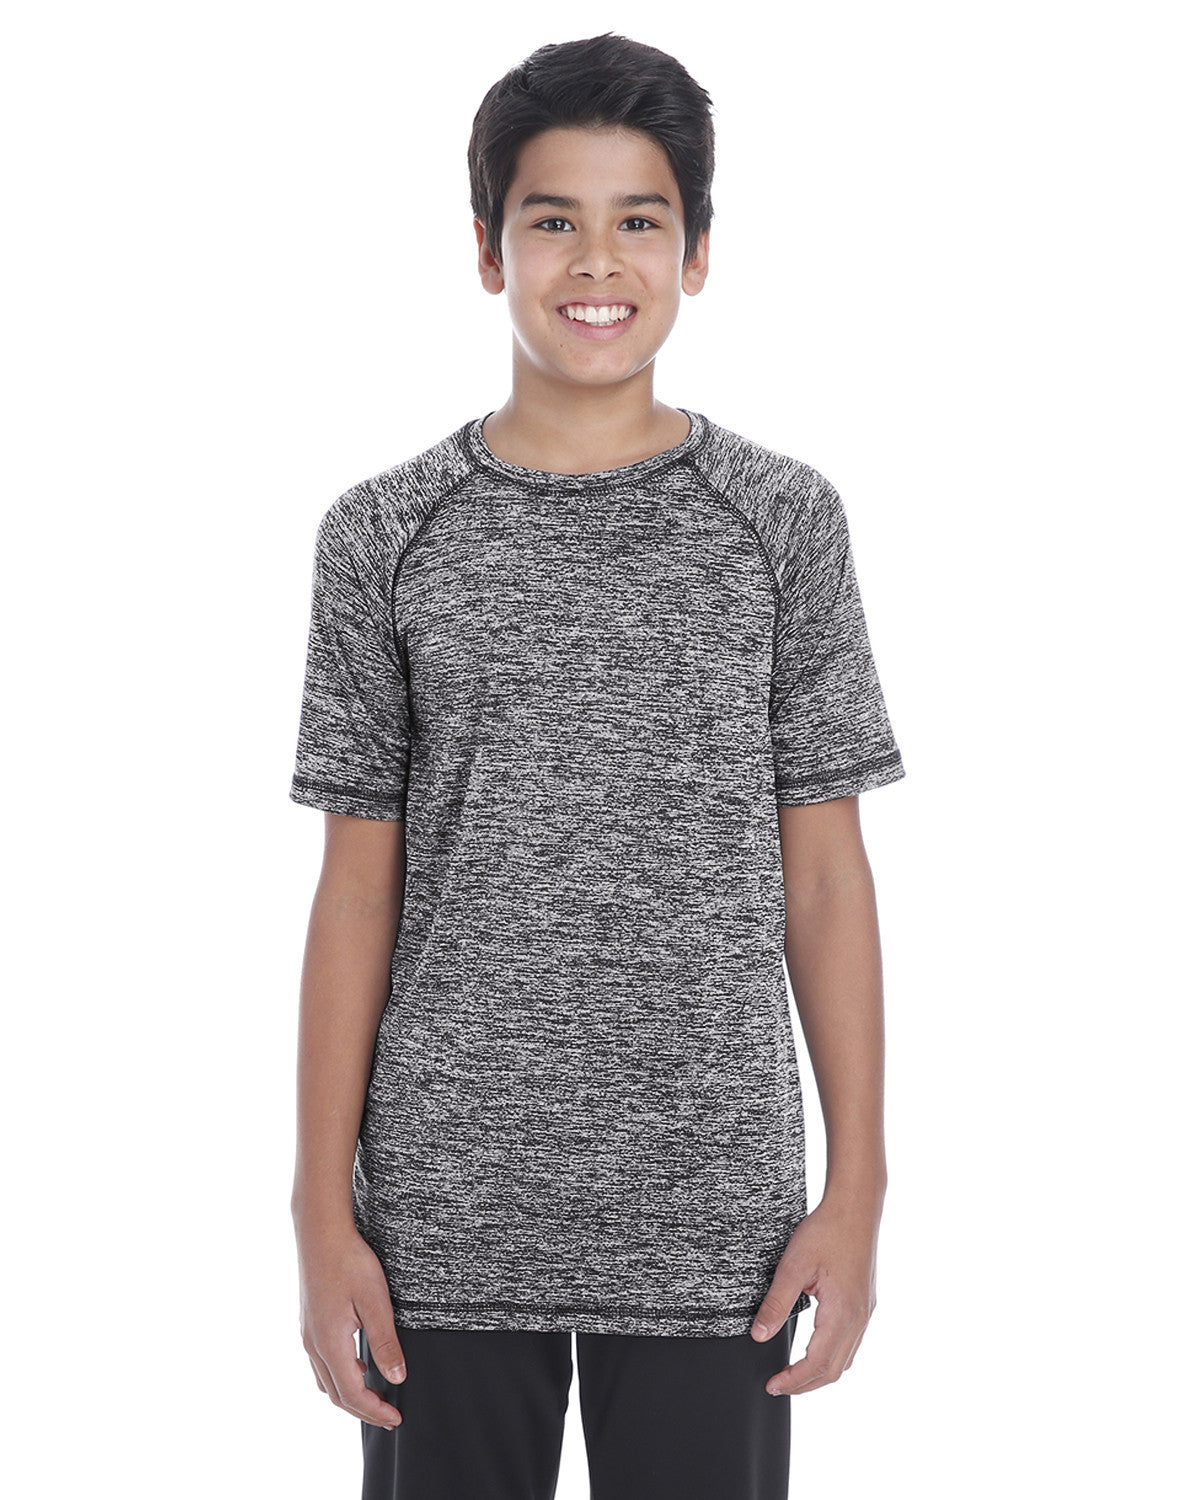 222622 - Holloway Youth Electrify 2.0 Short-Sleeve